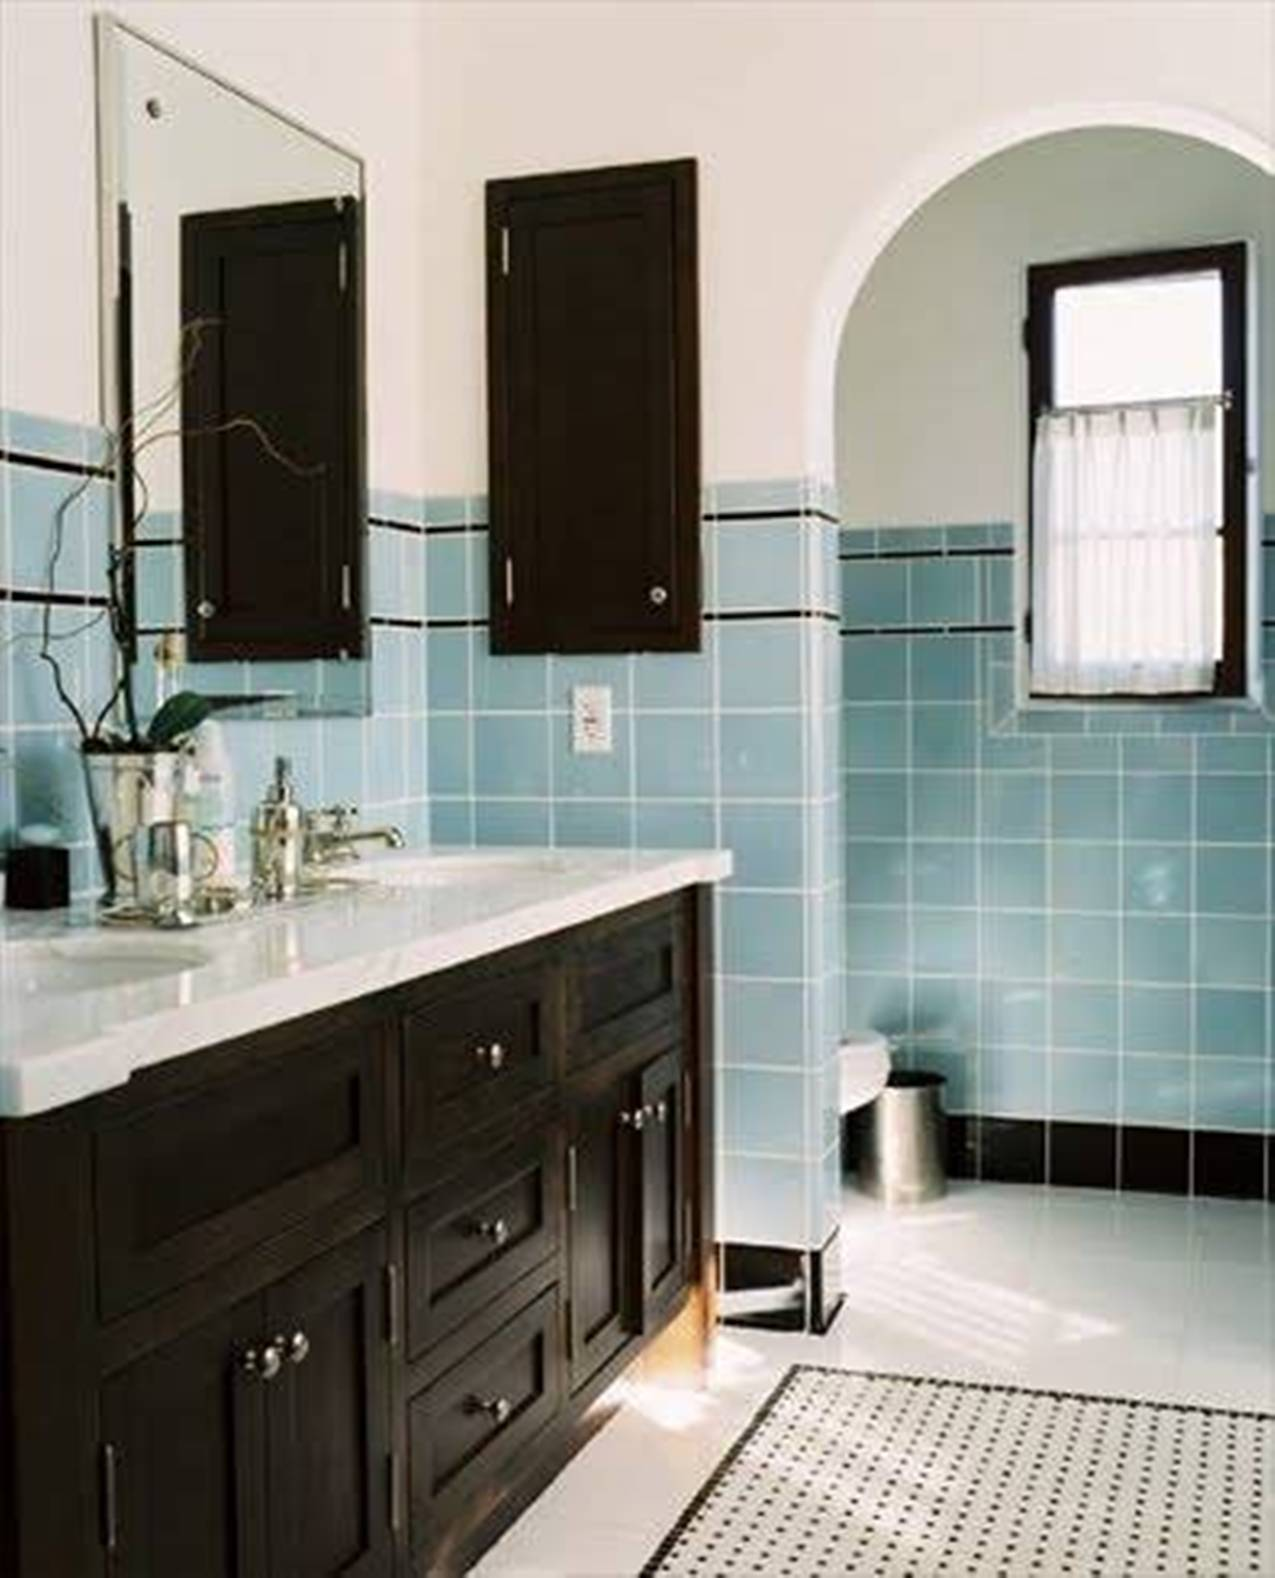 45 magnificent pictures of retro bathroom tile design ideas for Blue and black bathroom ideas